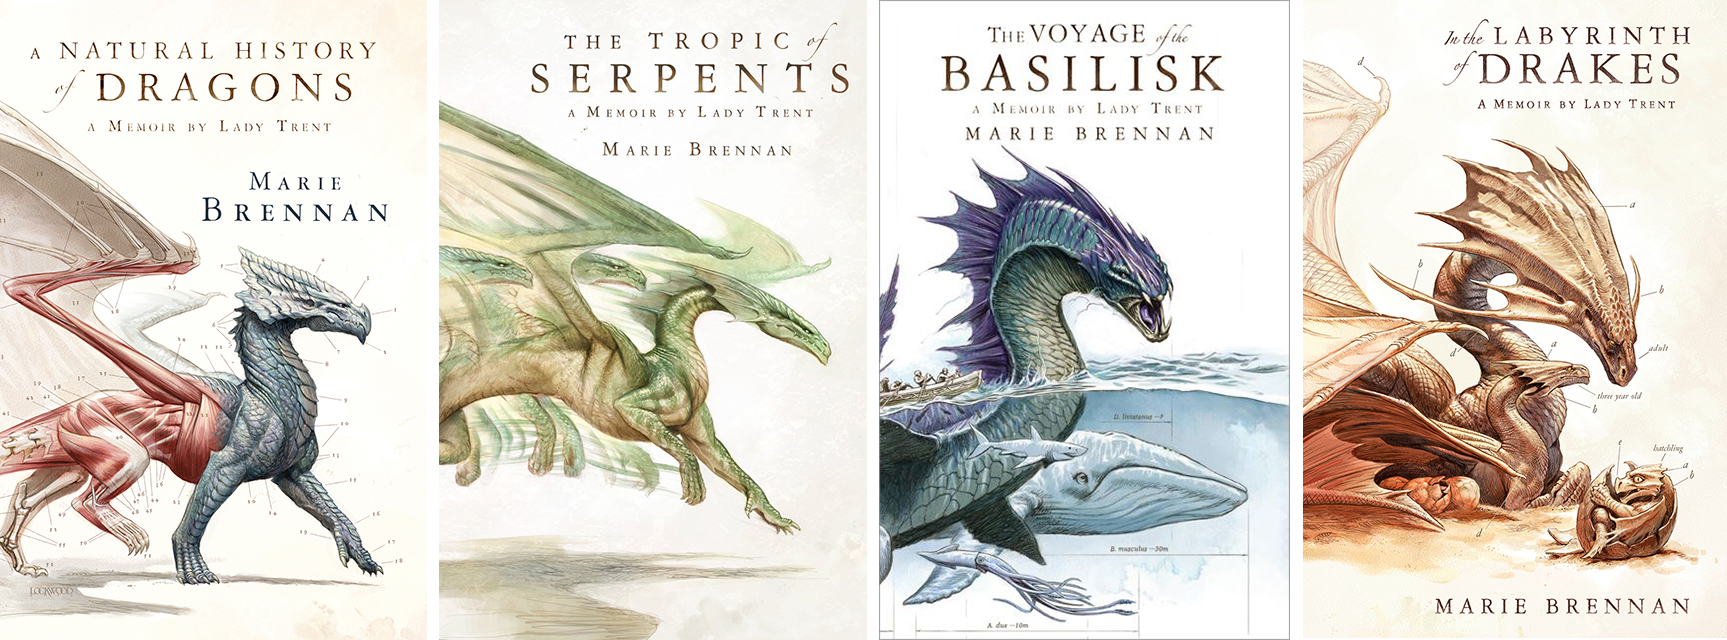 Marie Brennan dragon books cover